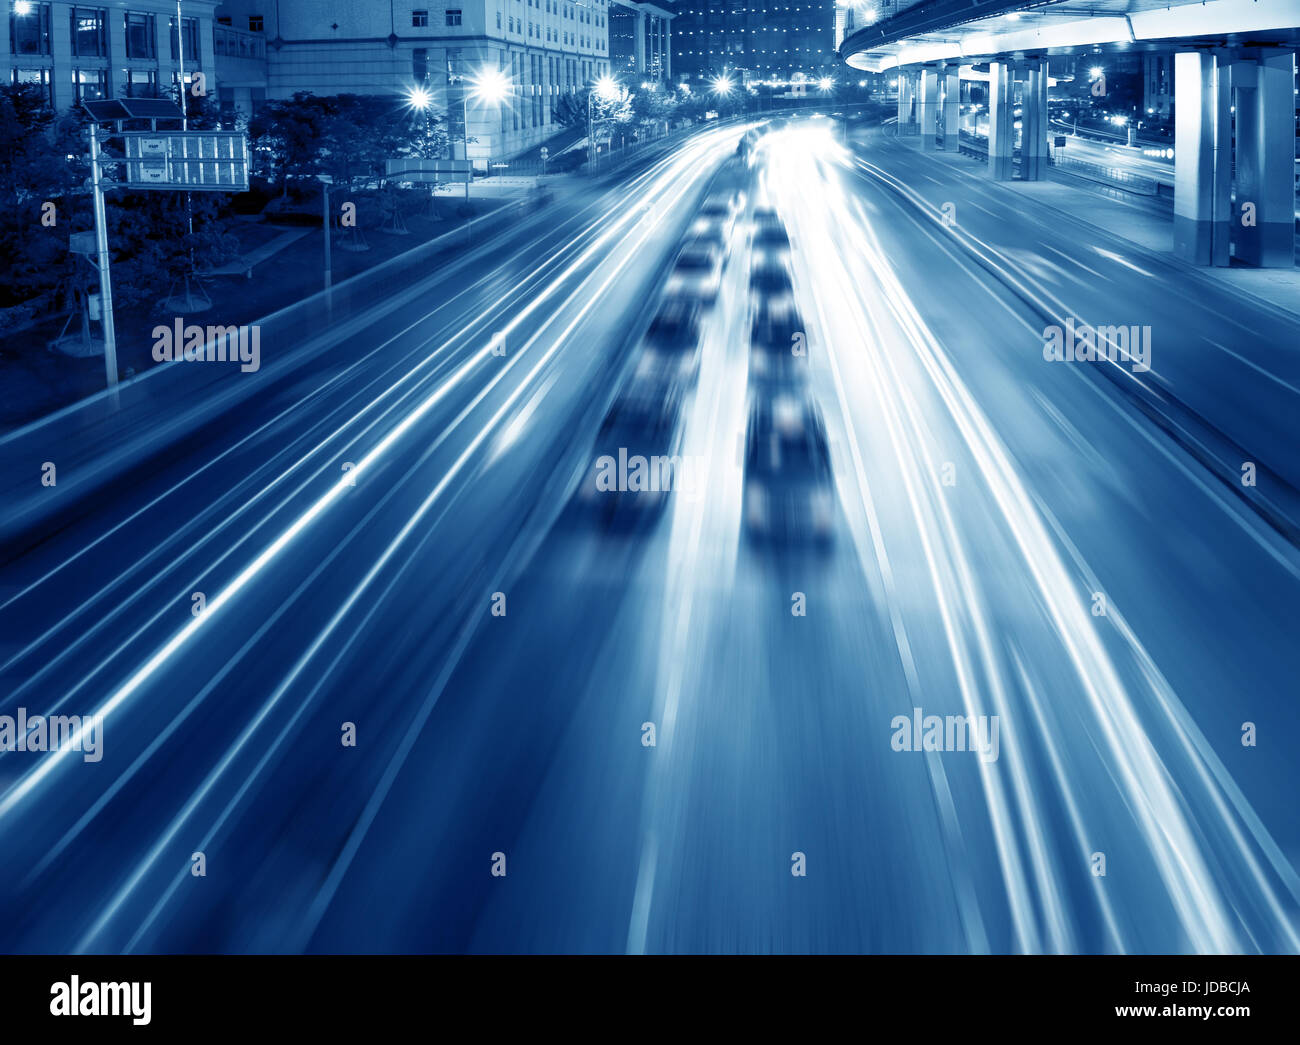 Highways and overpasses at night - Stock Image